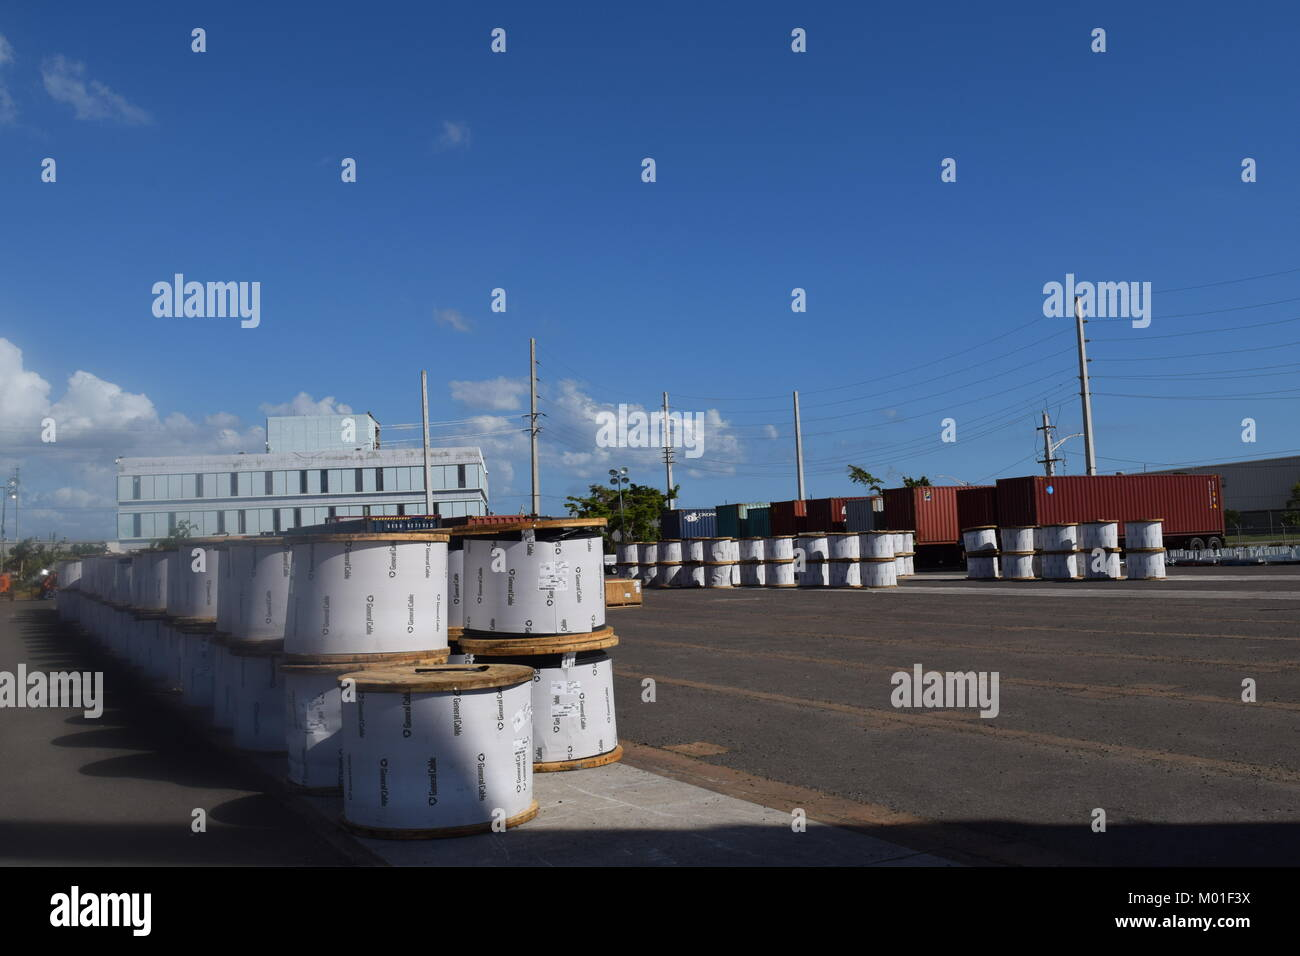 System Critical Stock Photos Images Alamy High Voltage Yard Training Simulator Hundreds Of Massive Coils Heavy Tension Wire Arrive At The Lay Down